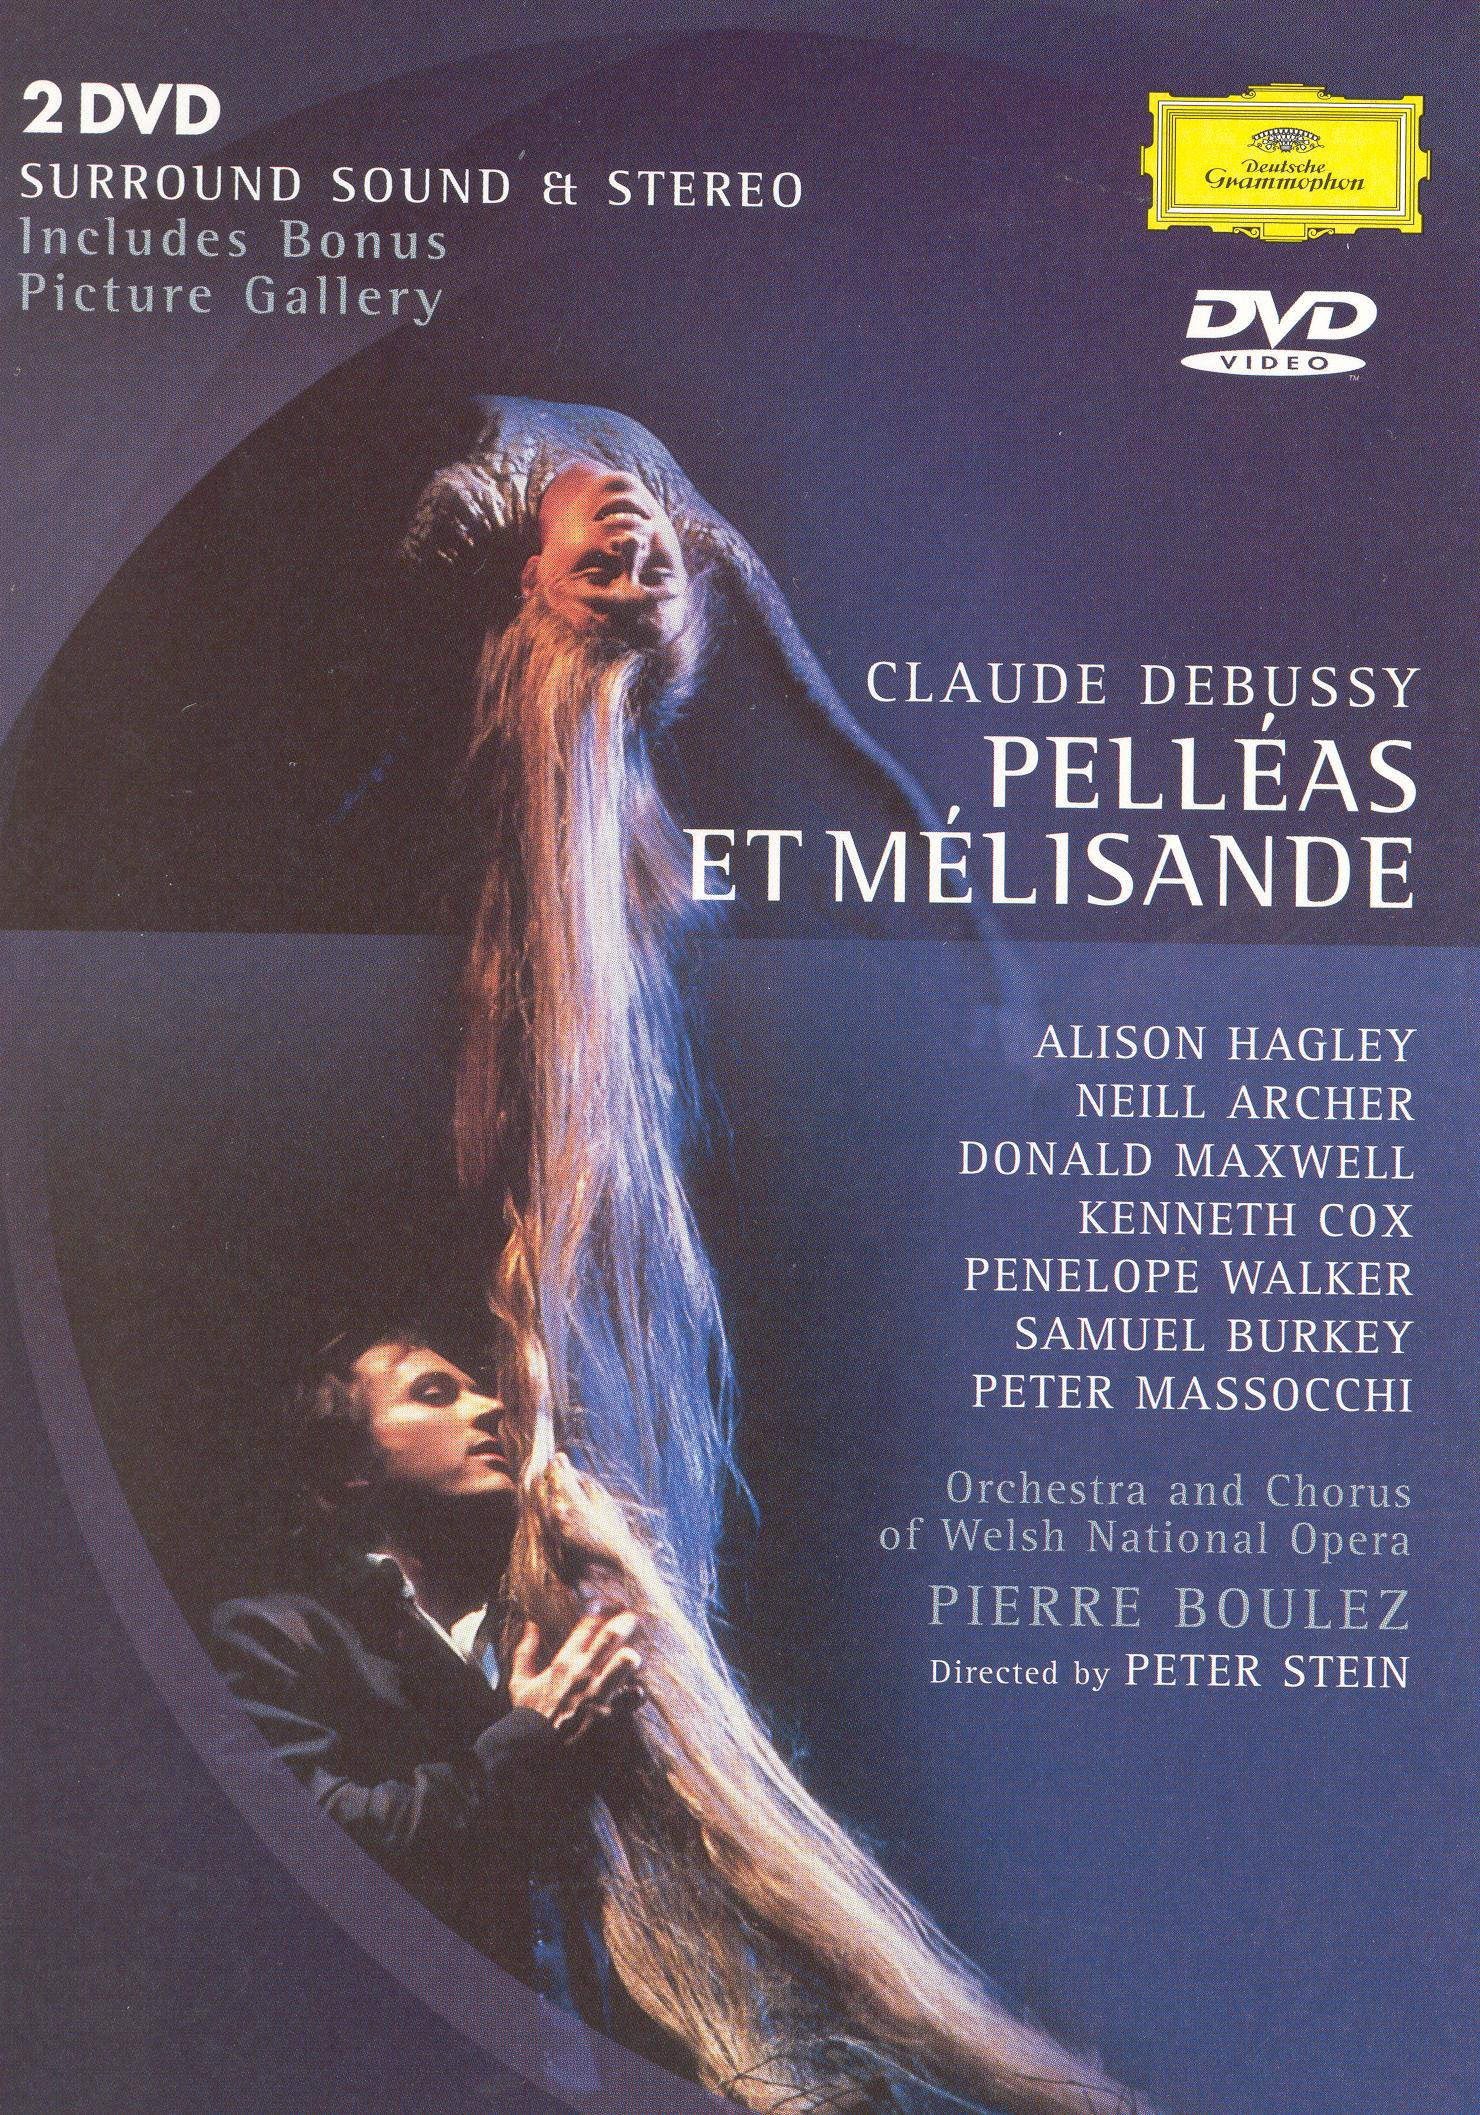 Pelléas et Mélisande (Welsh National Opera)